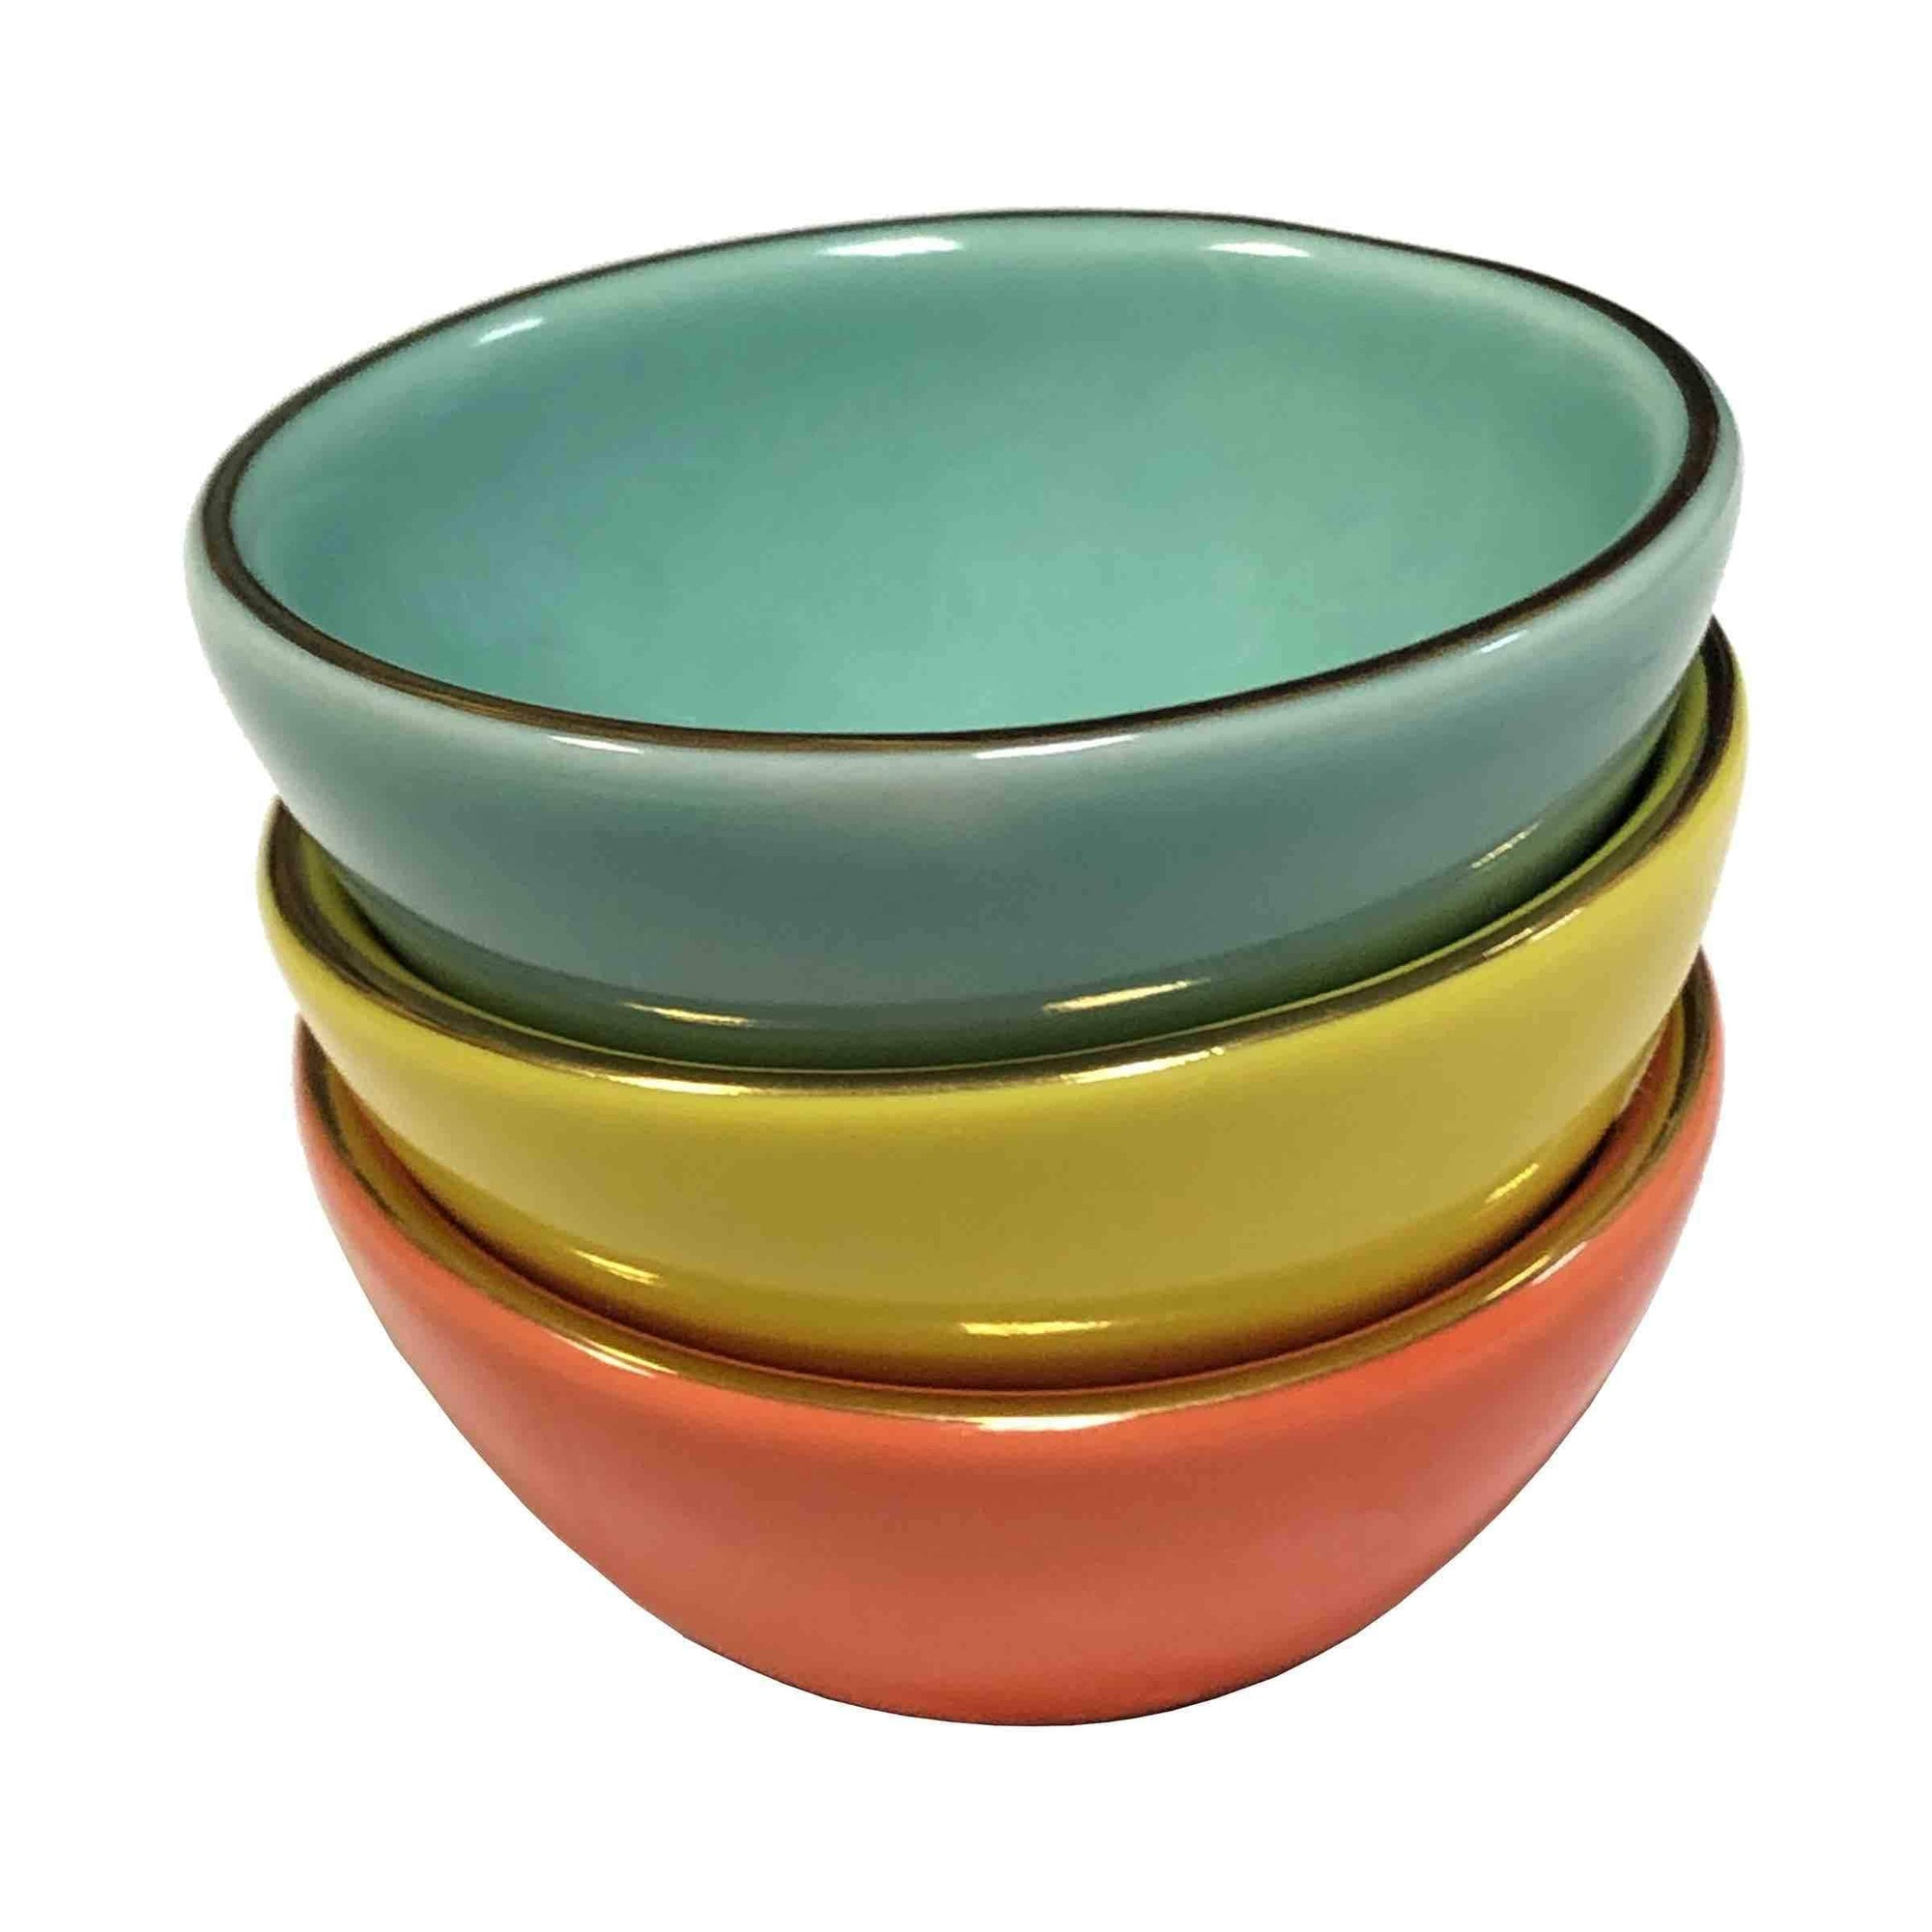 Streamline Empowered Vibes Mini Trinket Dishes - Set of 3